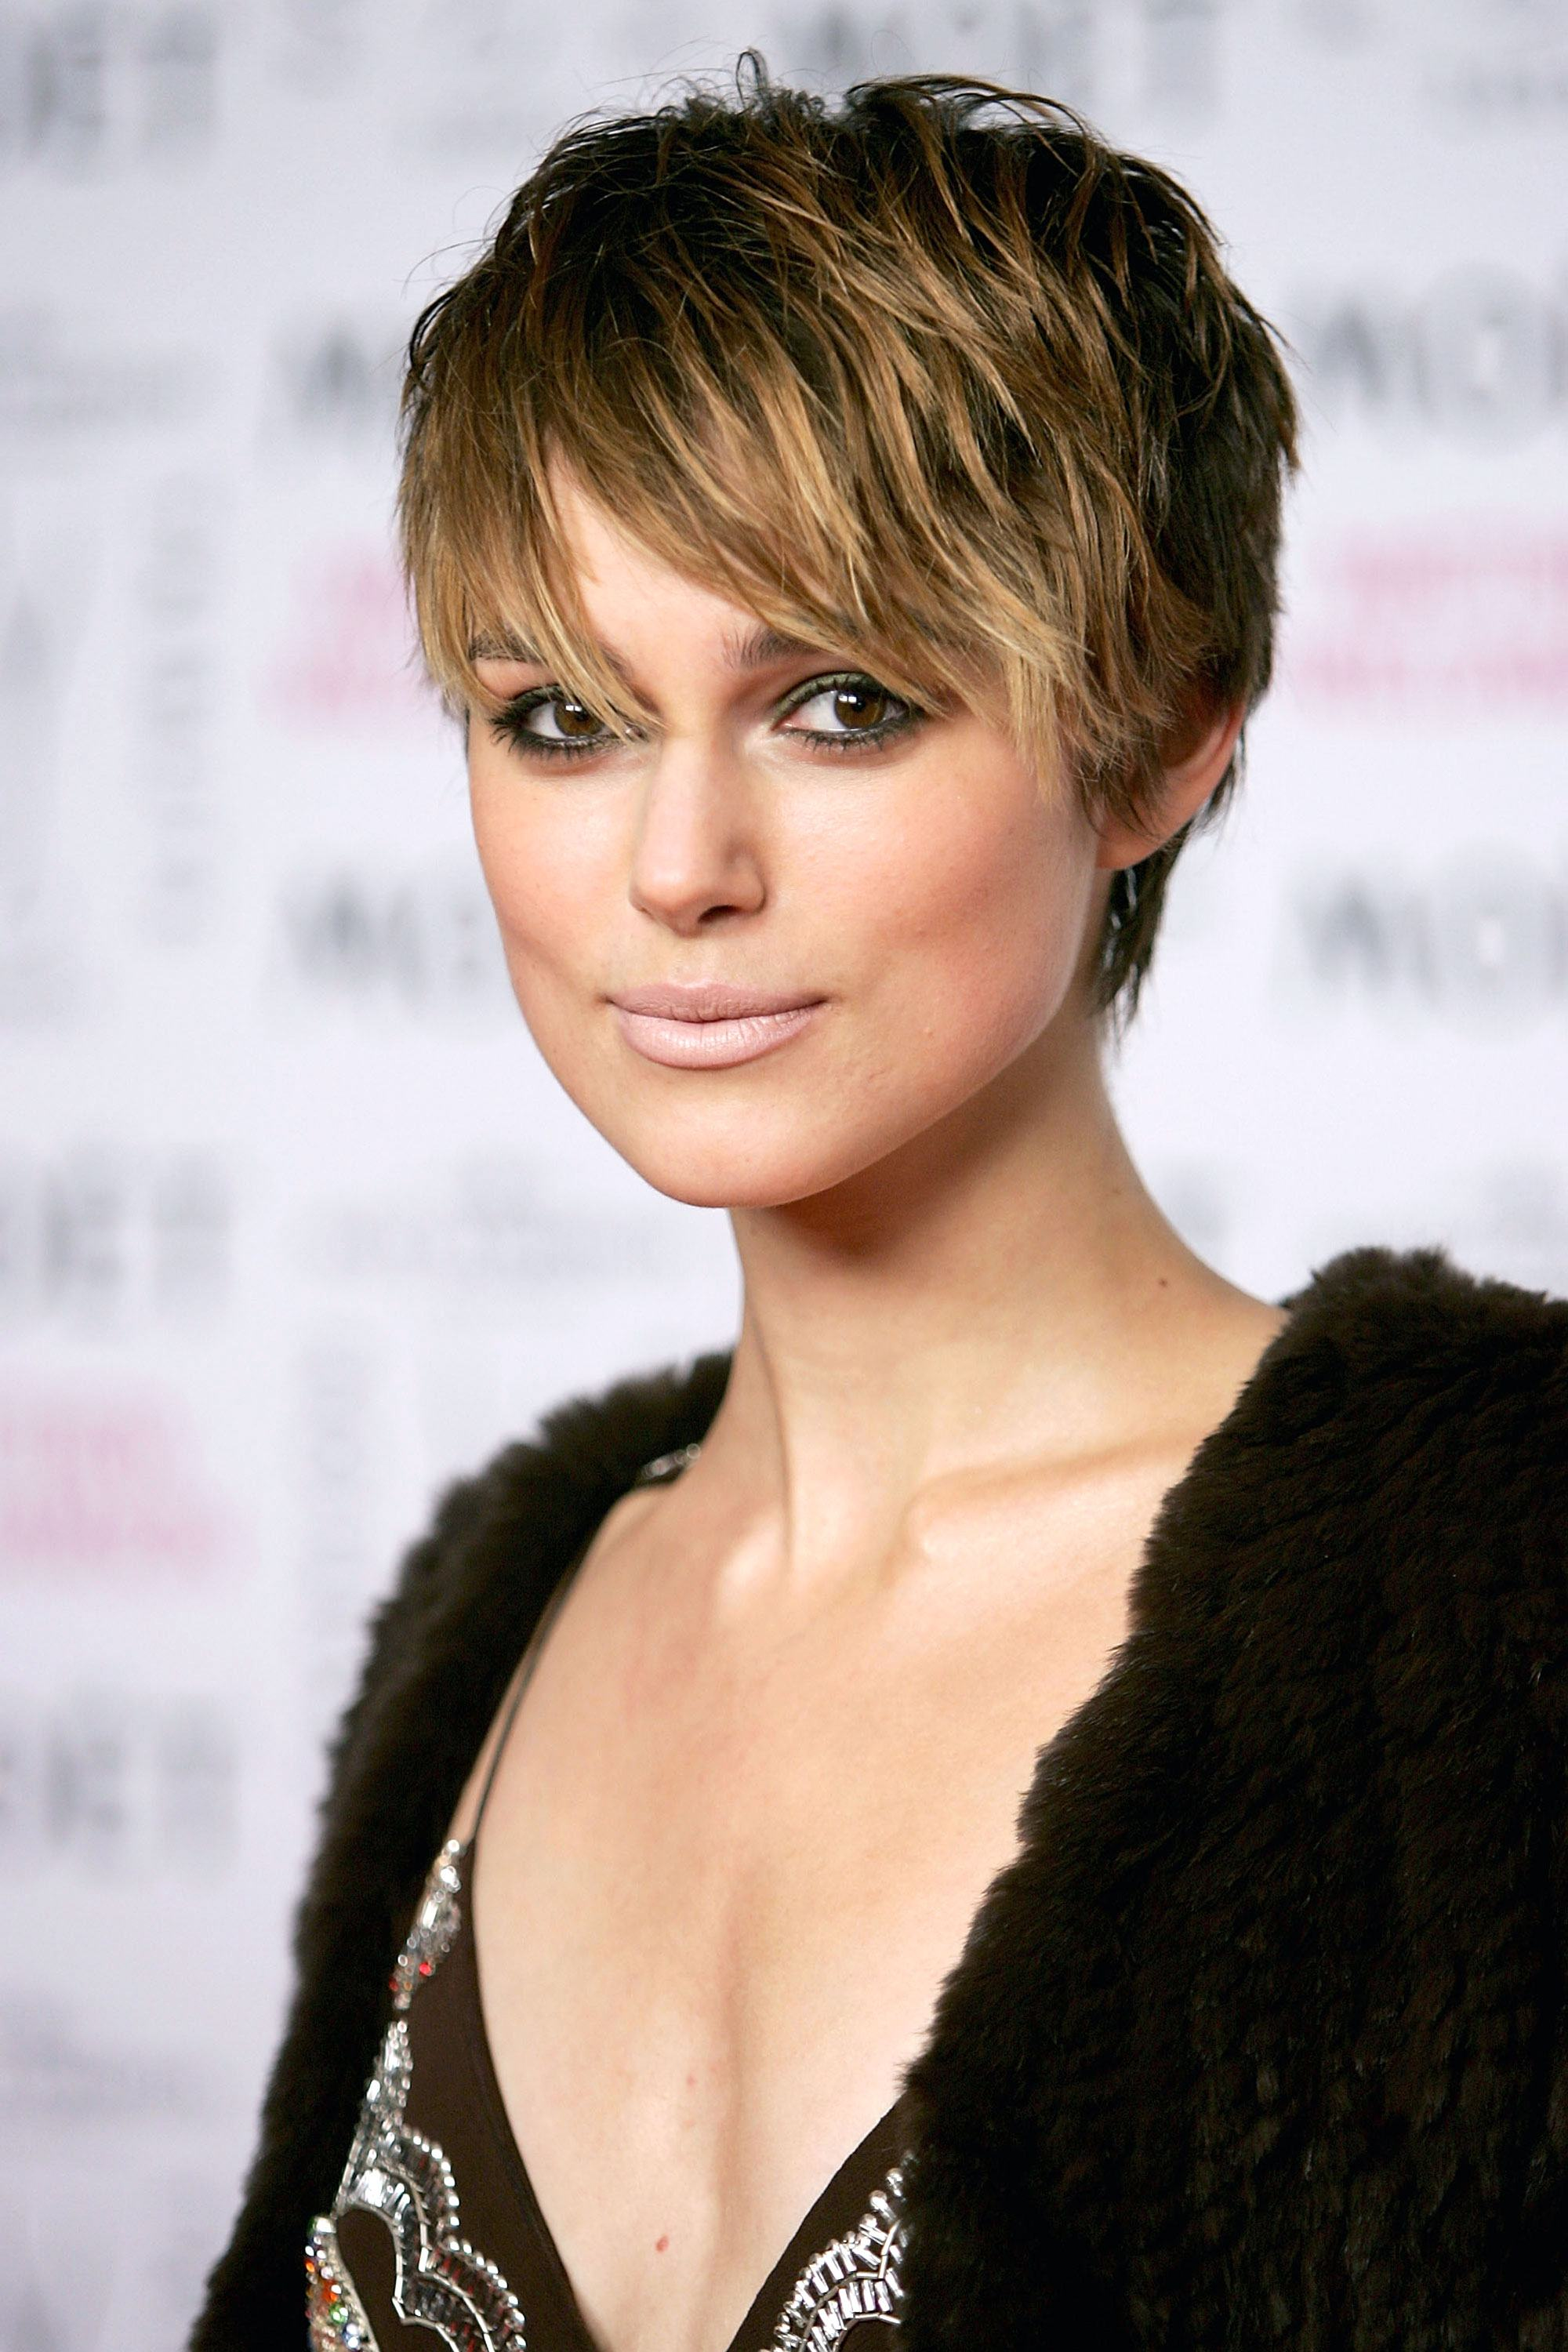 54bc005fc2d72_-_hbz-pixie-keira-knightley